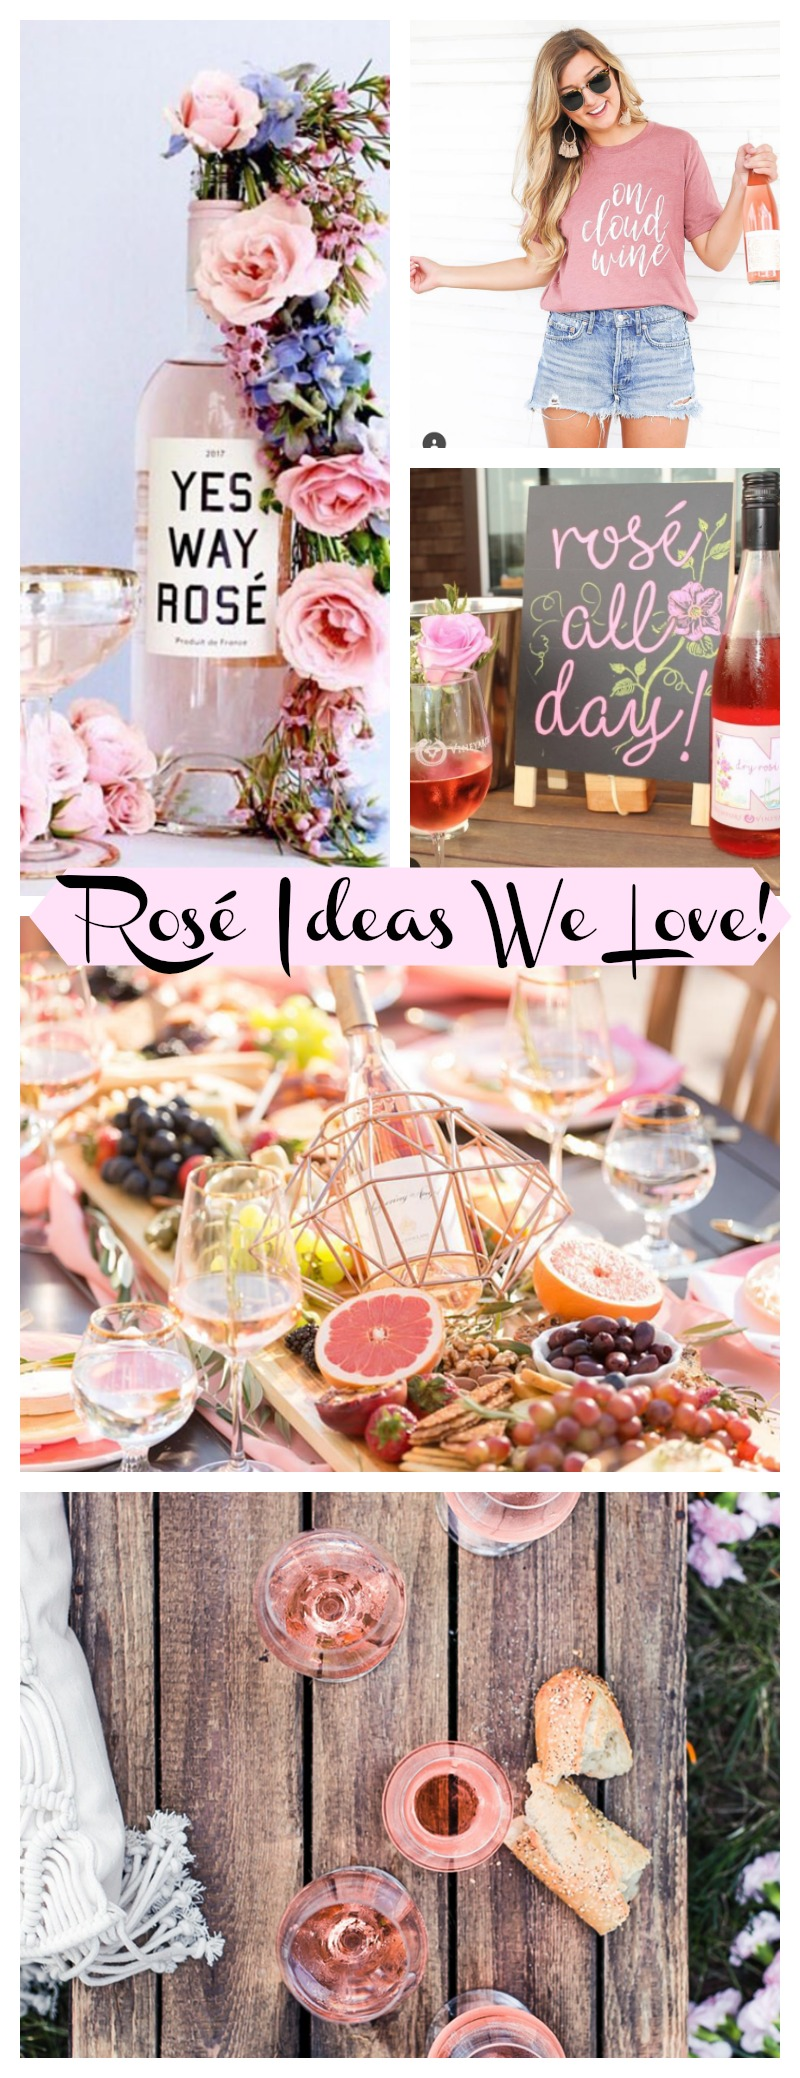 Rosé ideas we love! - B. Lovely Events